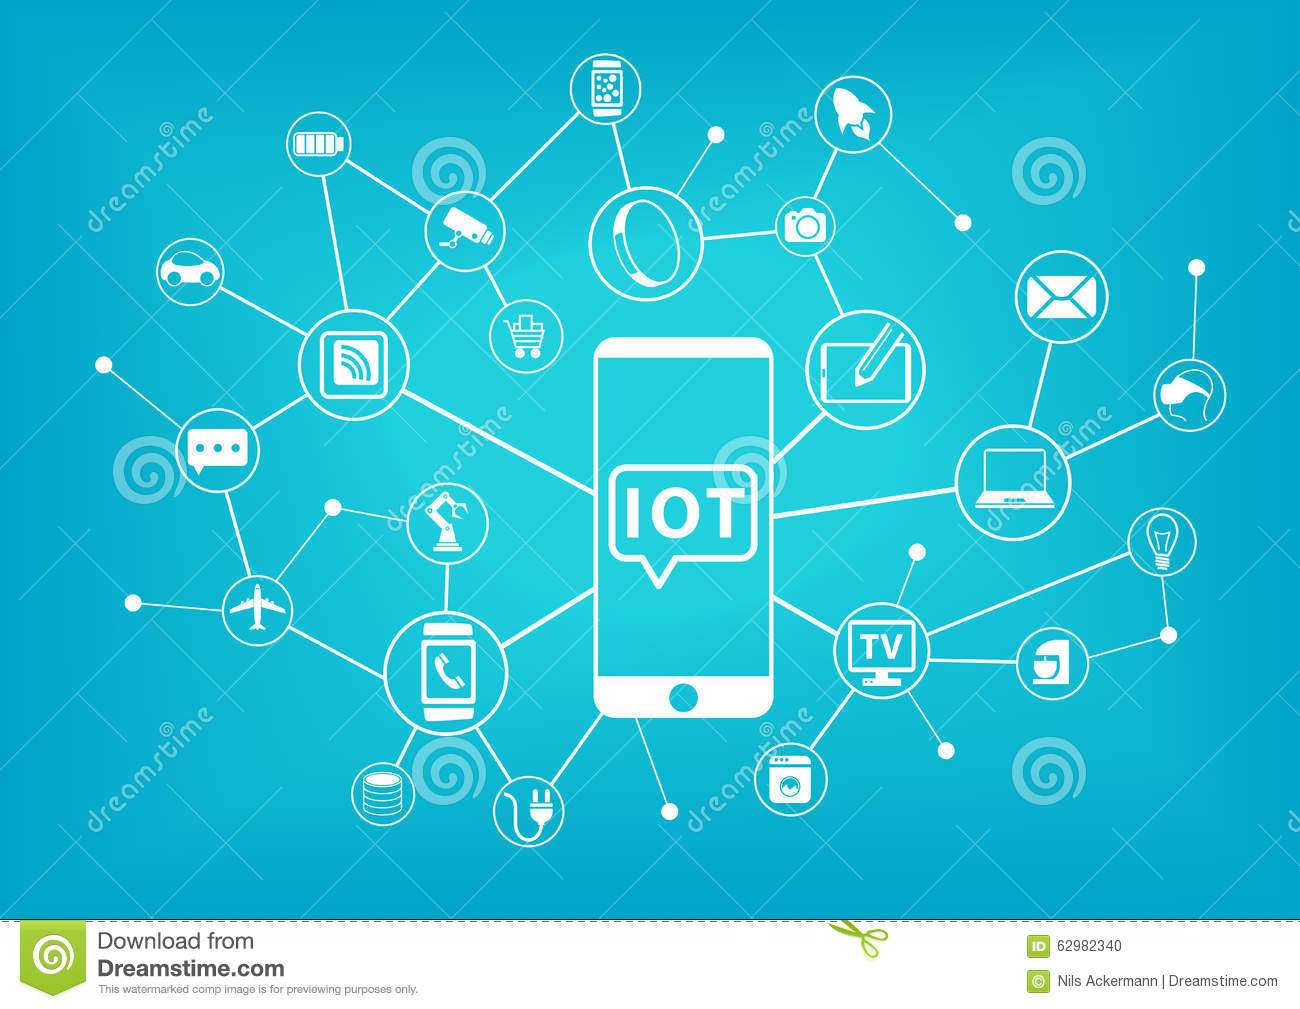 IOT (internet of things) concept. Mobile phone connected to the internet